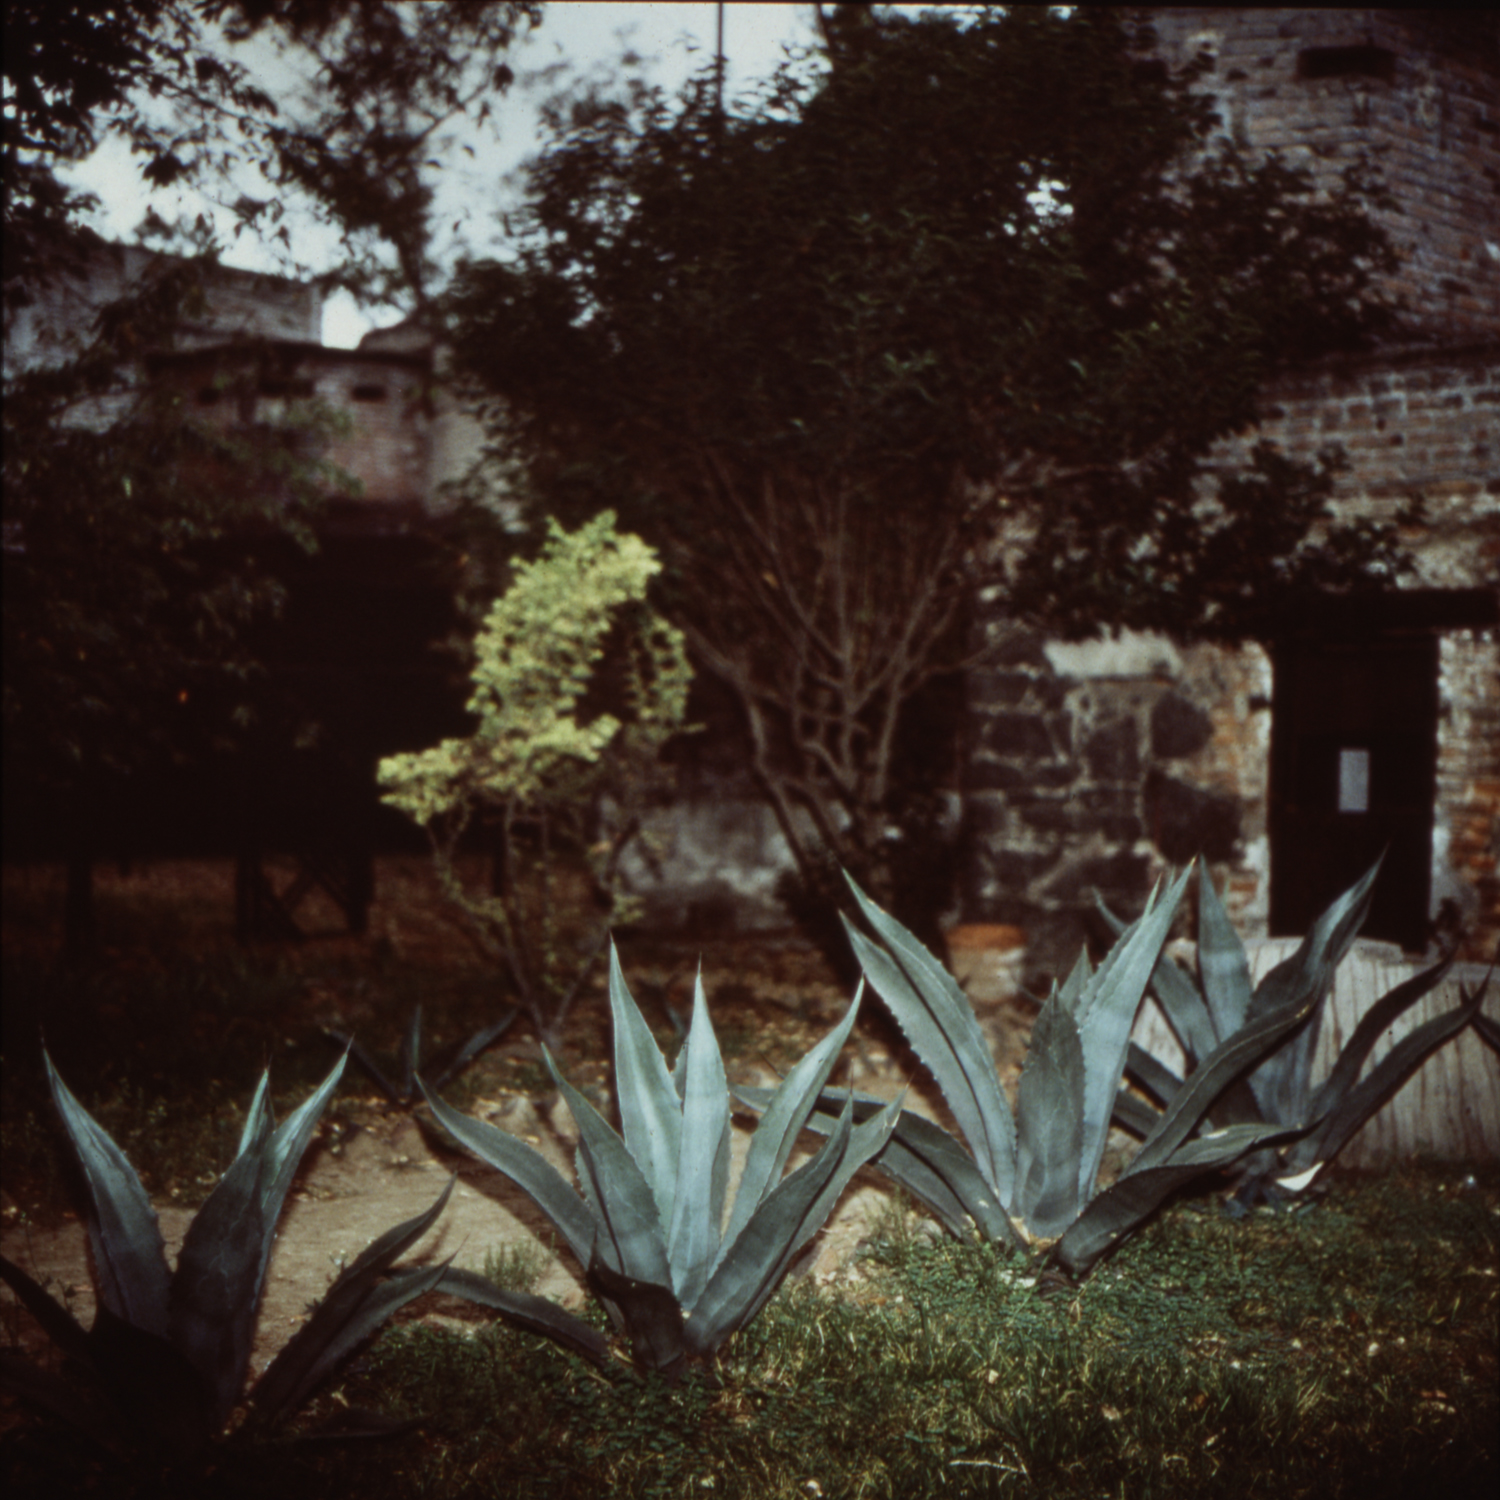 Cactus and Guard Tower - (Trotsky) 1990